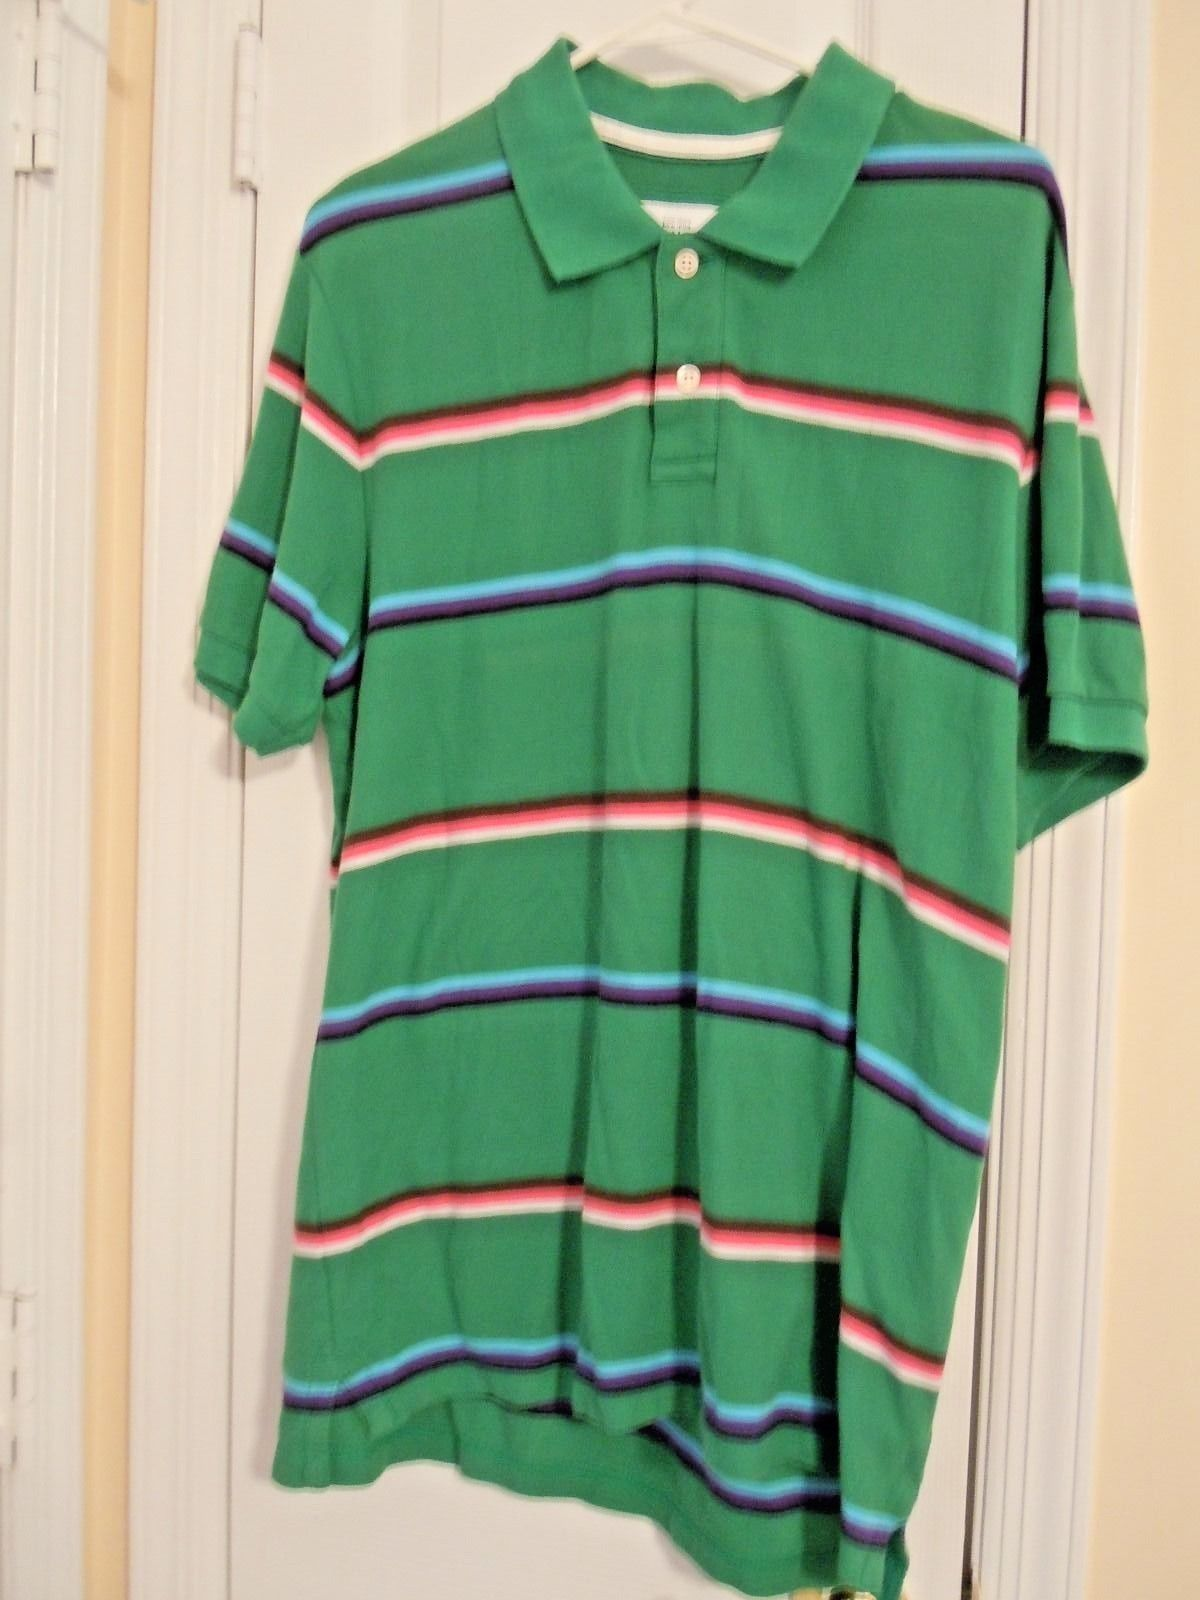 27778b76e4a Old Navy Mens Sz. L Green Striped S S Polo Shirt 100% Cotton Excellent  Condition -  5.79